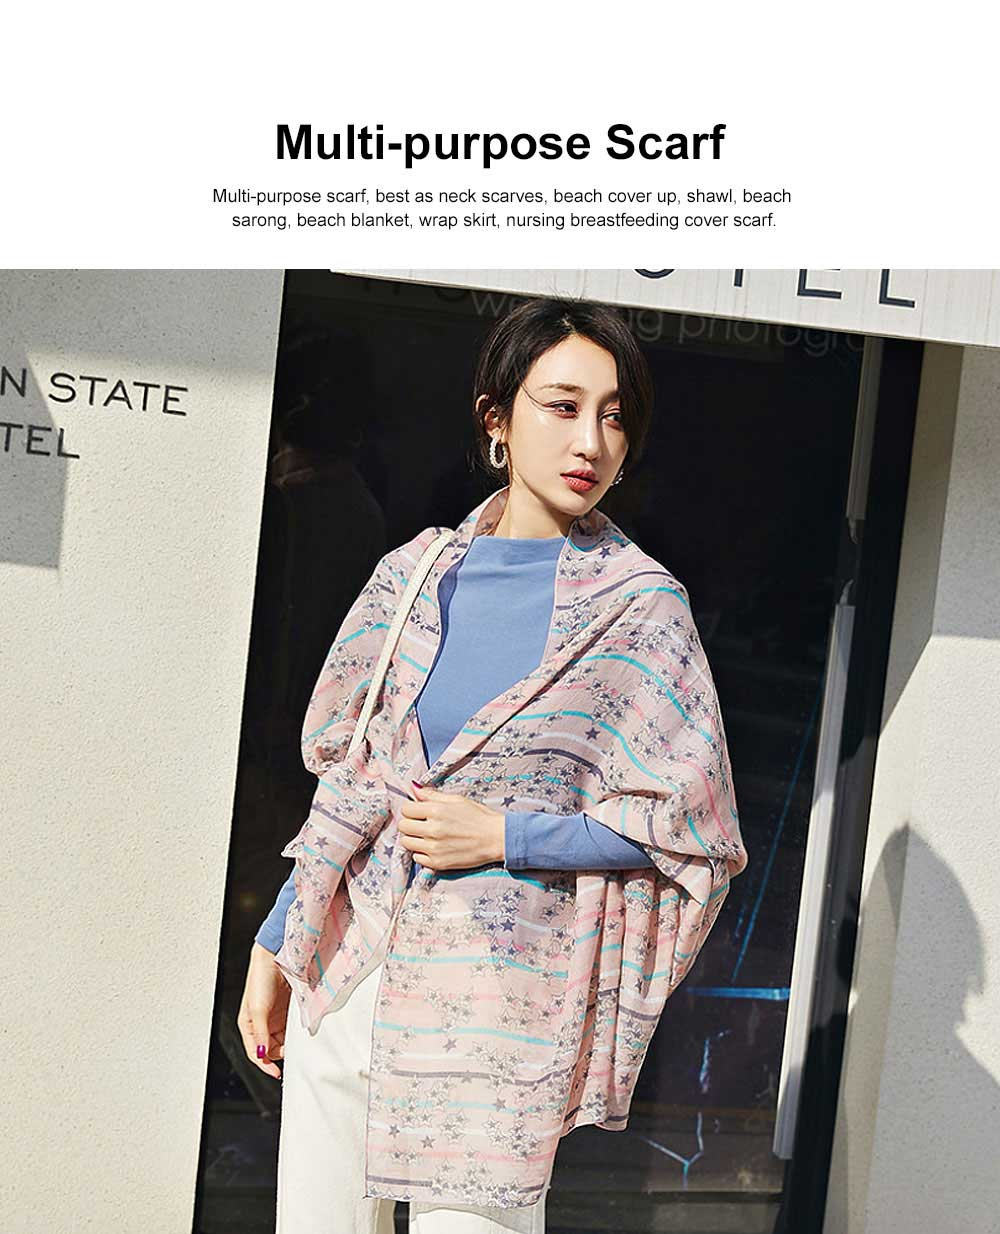 Women Cotton Linen Scarves Wild Print Sunscreen Beach Cover-up Shawl Fashion Accessories Best Gifts for women 3